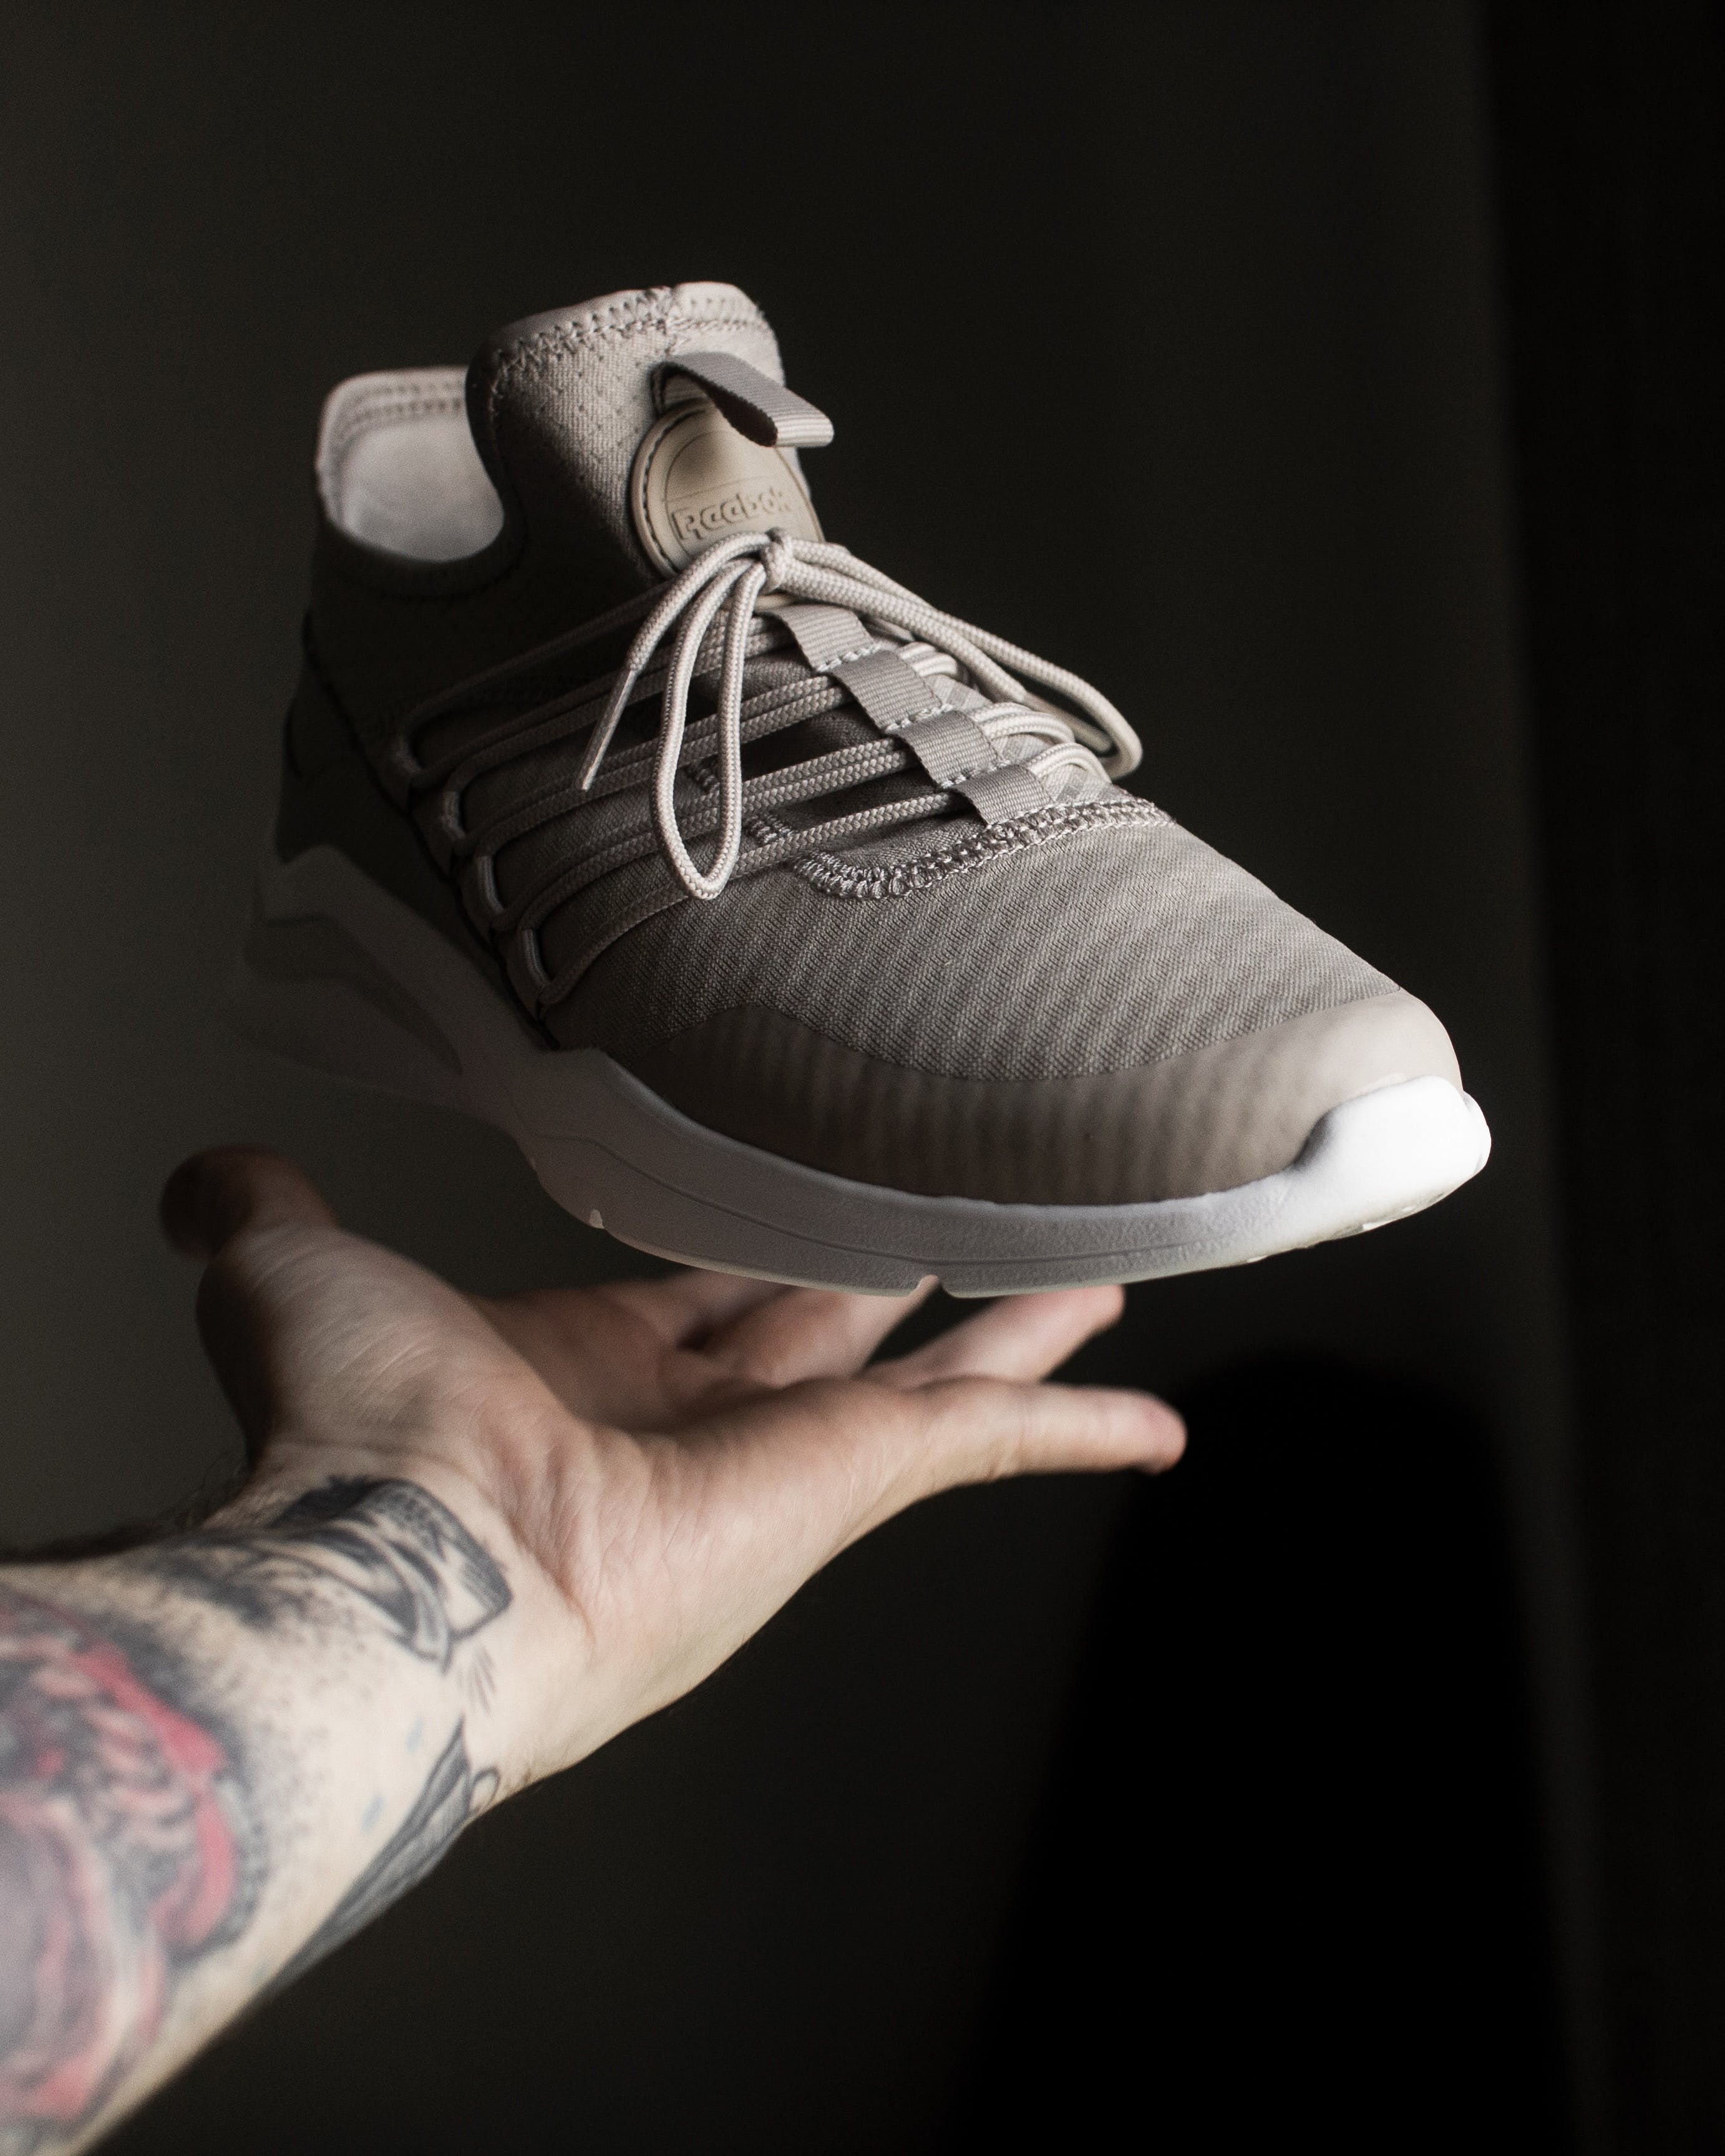 Gray and White Adidas Low-top Sneaker on Person's Fingers